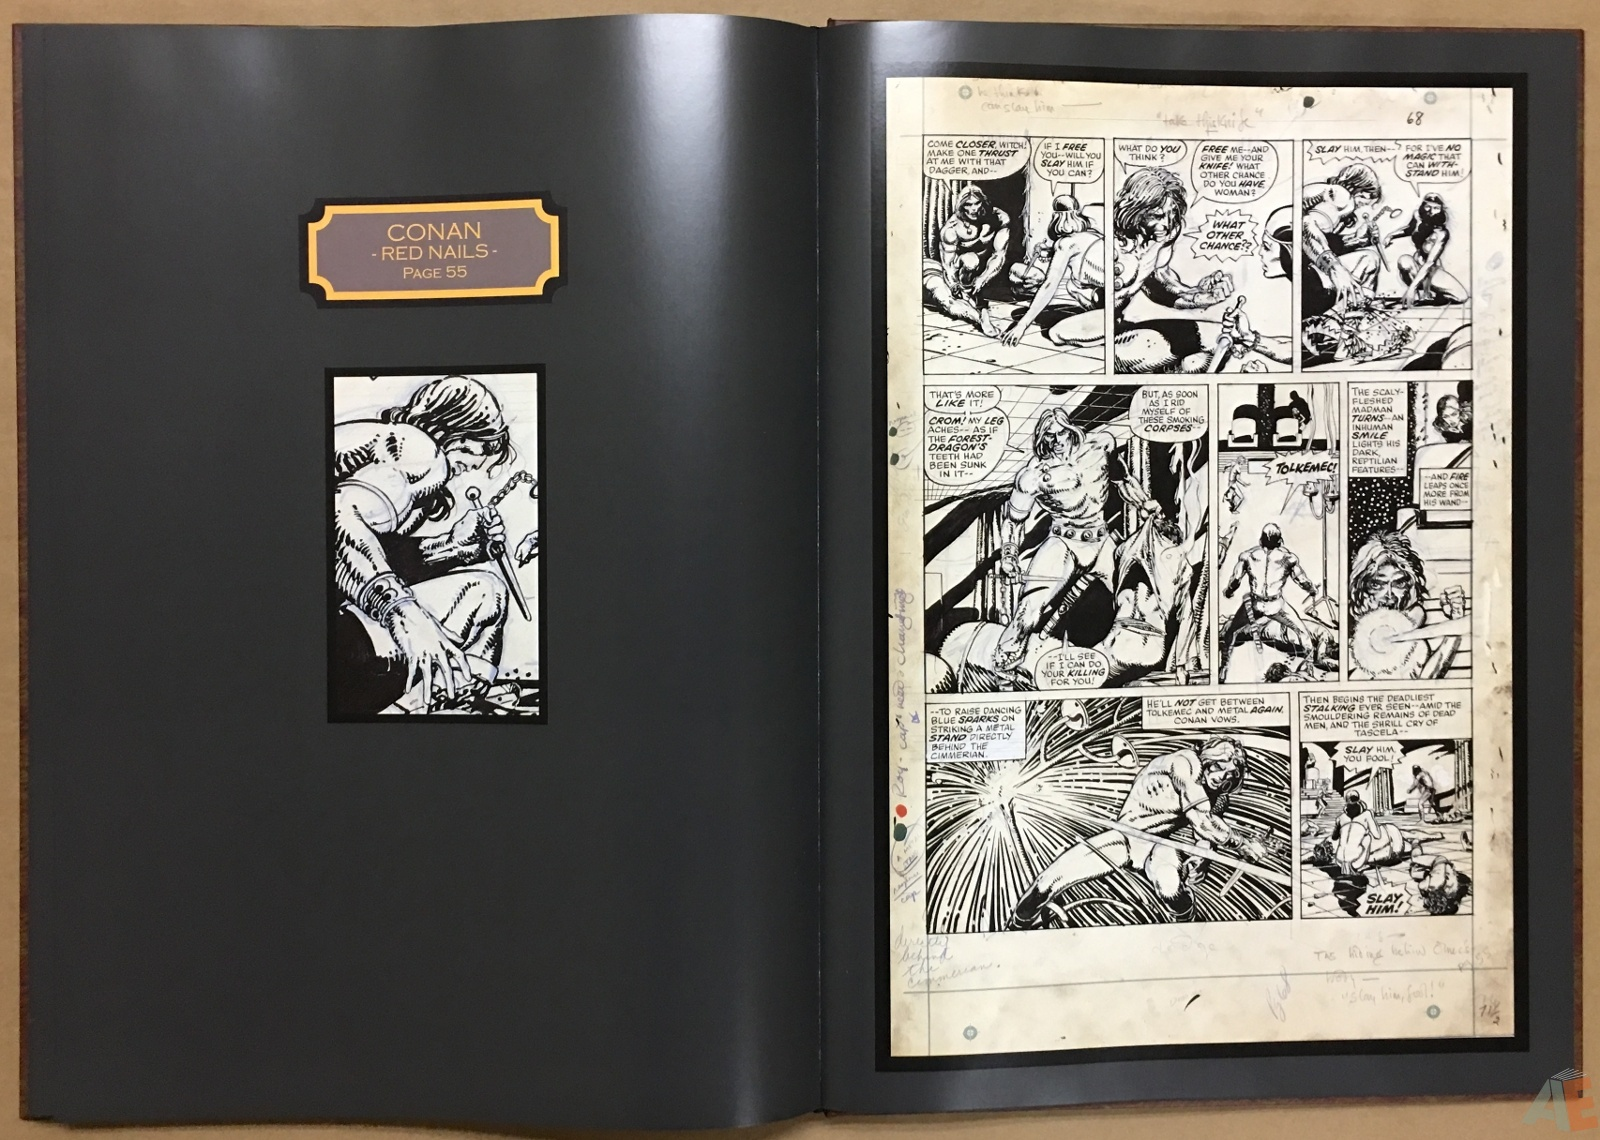 Conan Red Nails Original Art Archives Volume 1 Artist S Edition Index